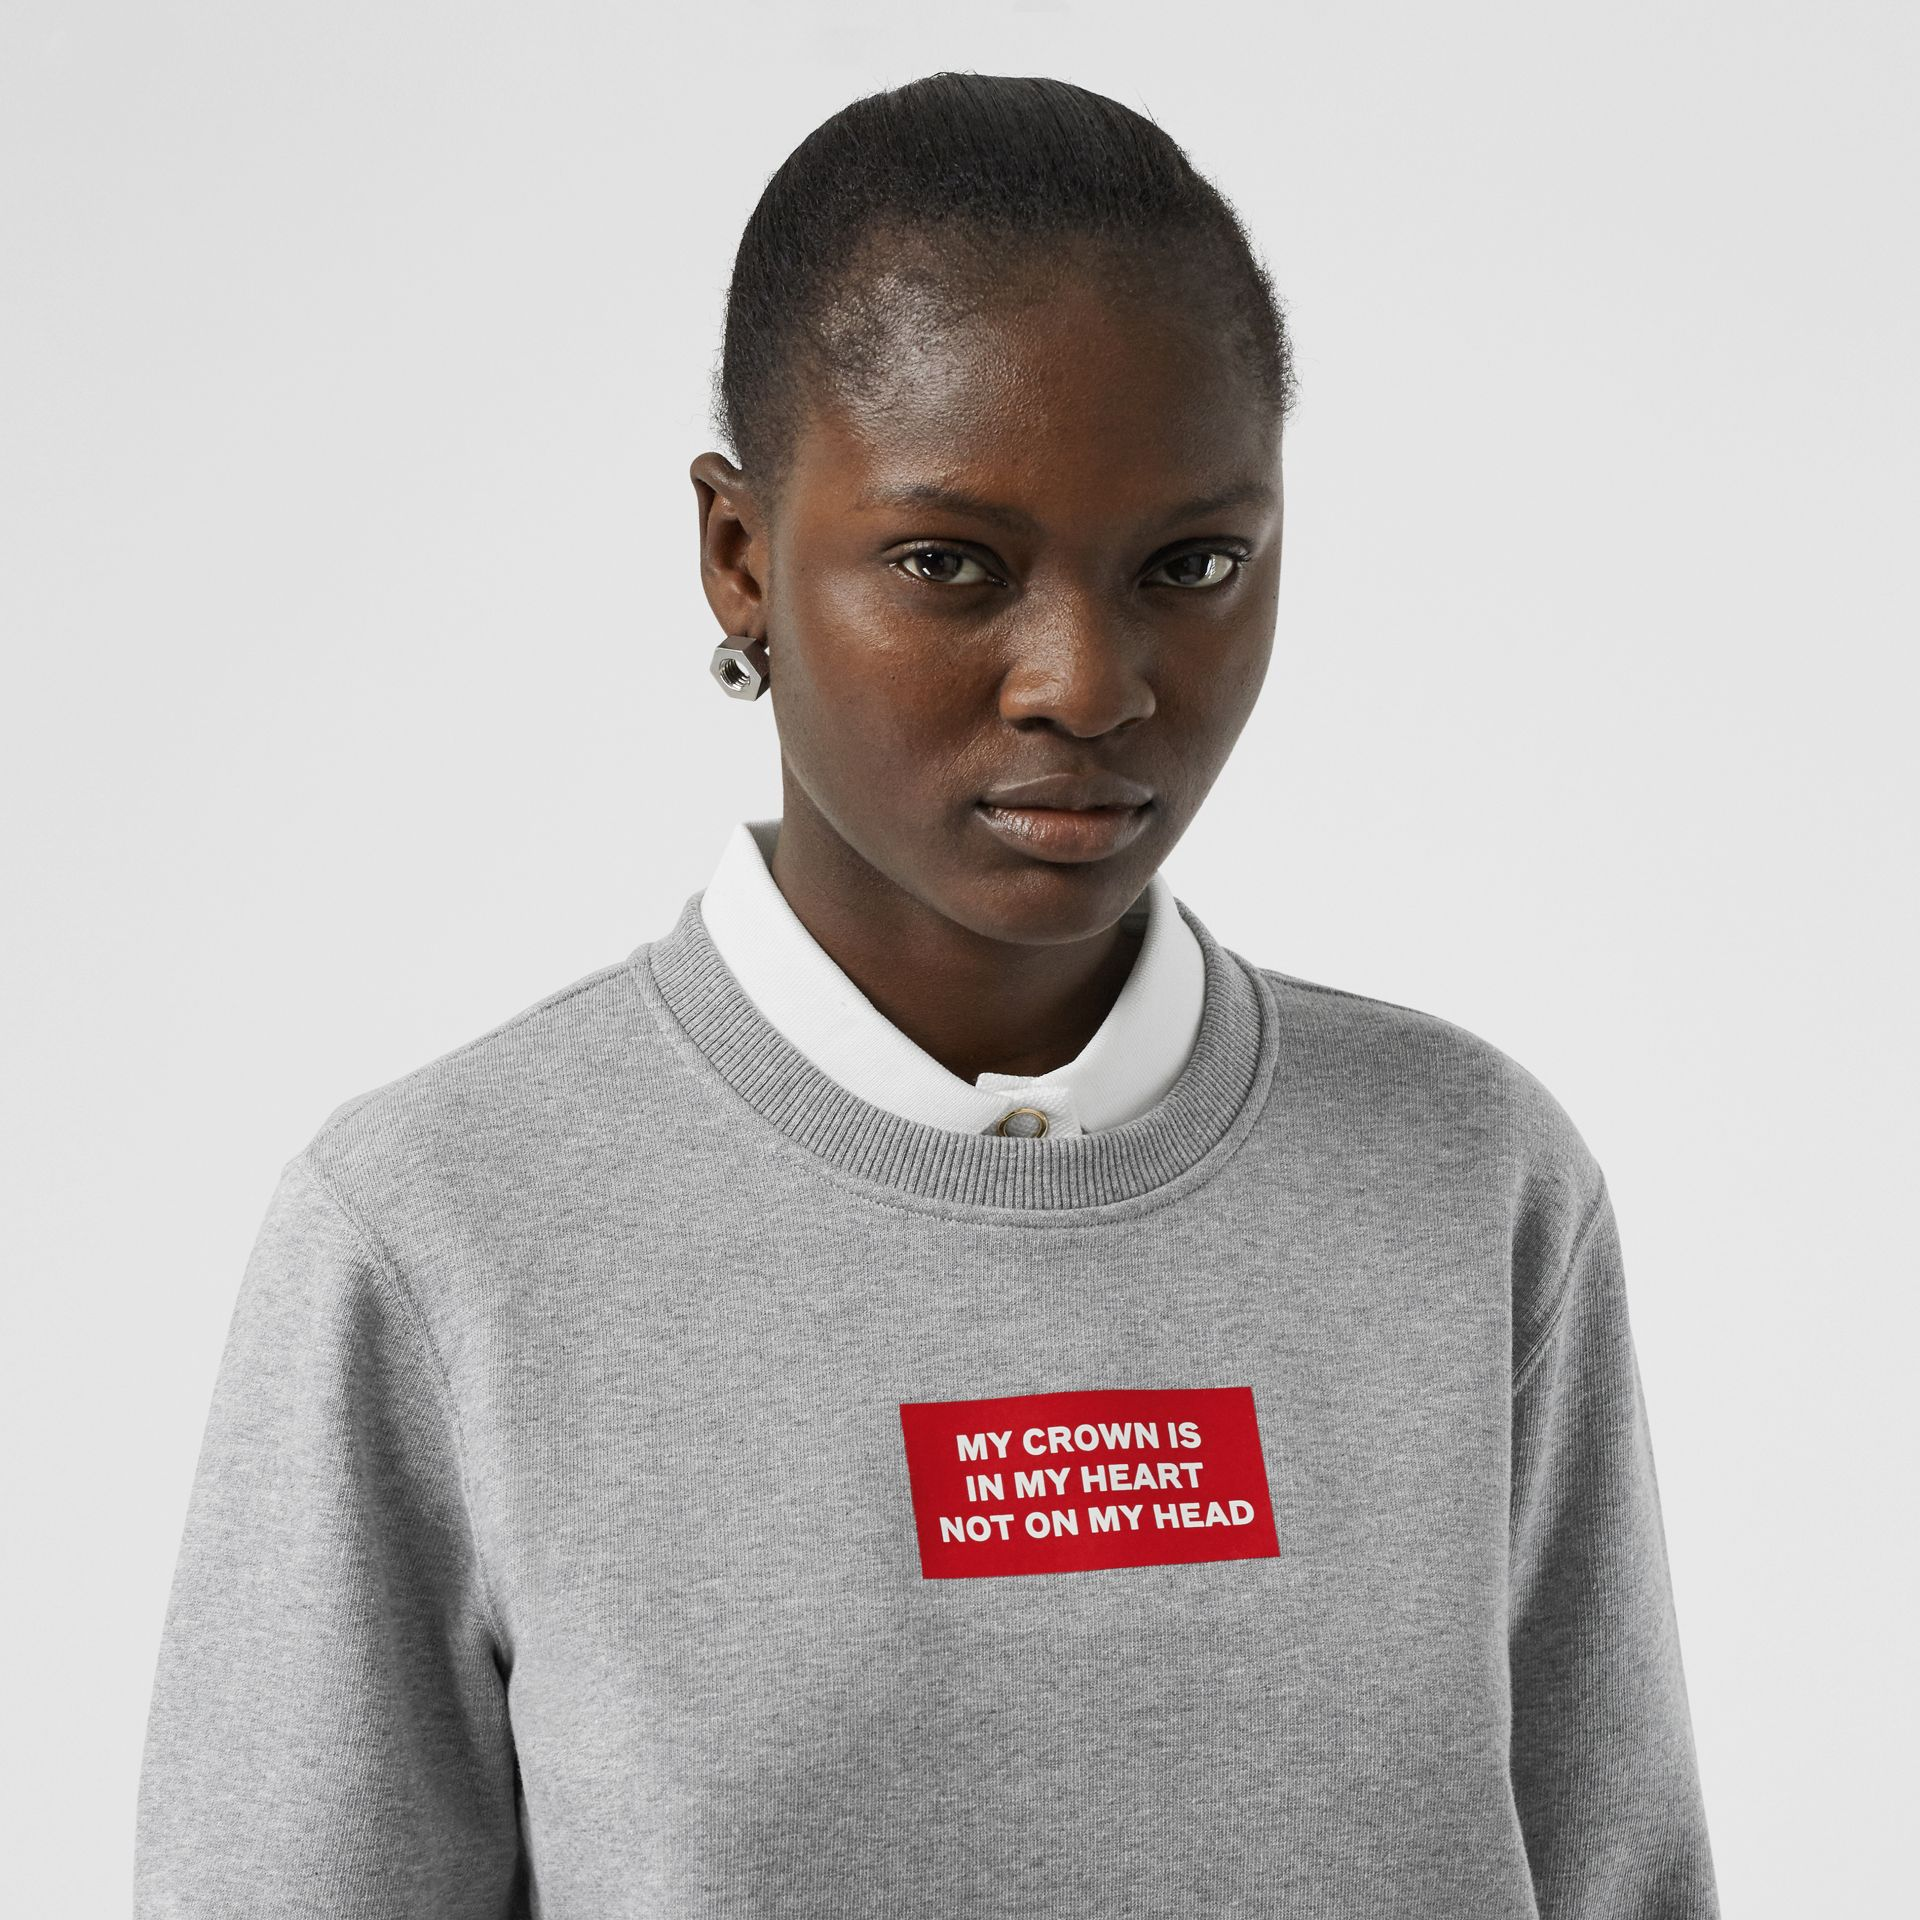 Sweat-shirt en coton avec citation (Camaïeu De Gris Pâles) - Femme | Burberry - photo de la galerie 1